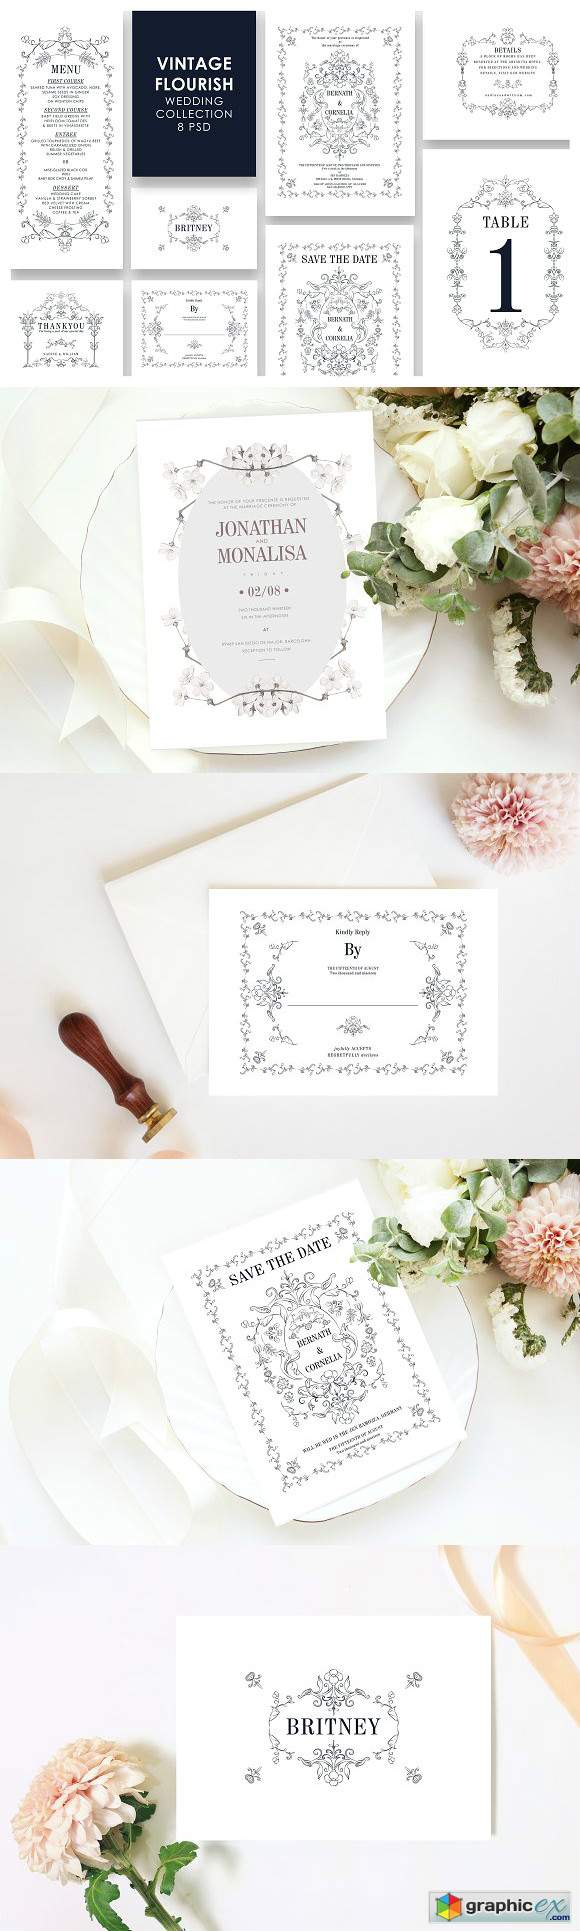 Vintage Wedding Invitation Set